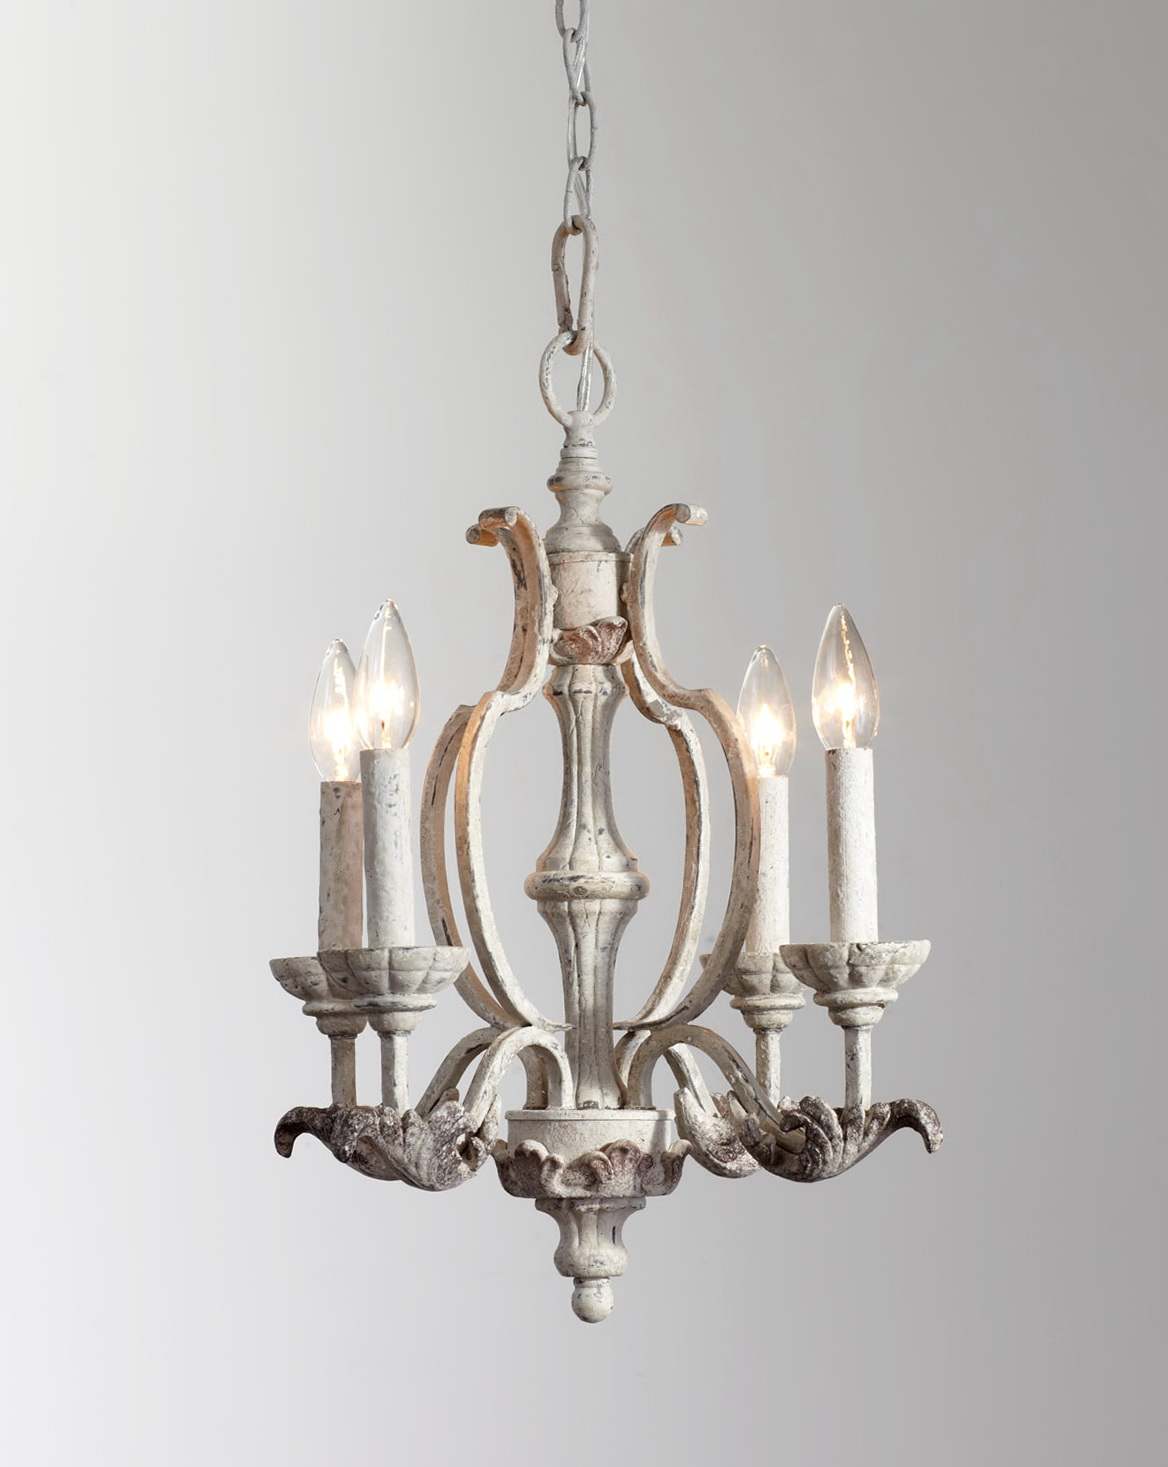 Mini Chandelier For Bathroom 28 Images Small Chandelier For Bathroom Mini Chandeliers For